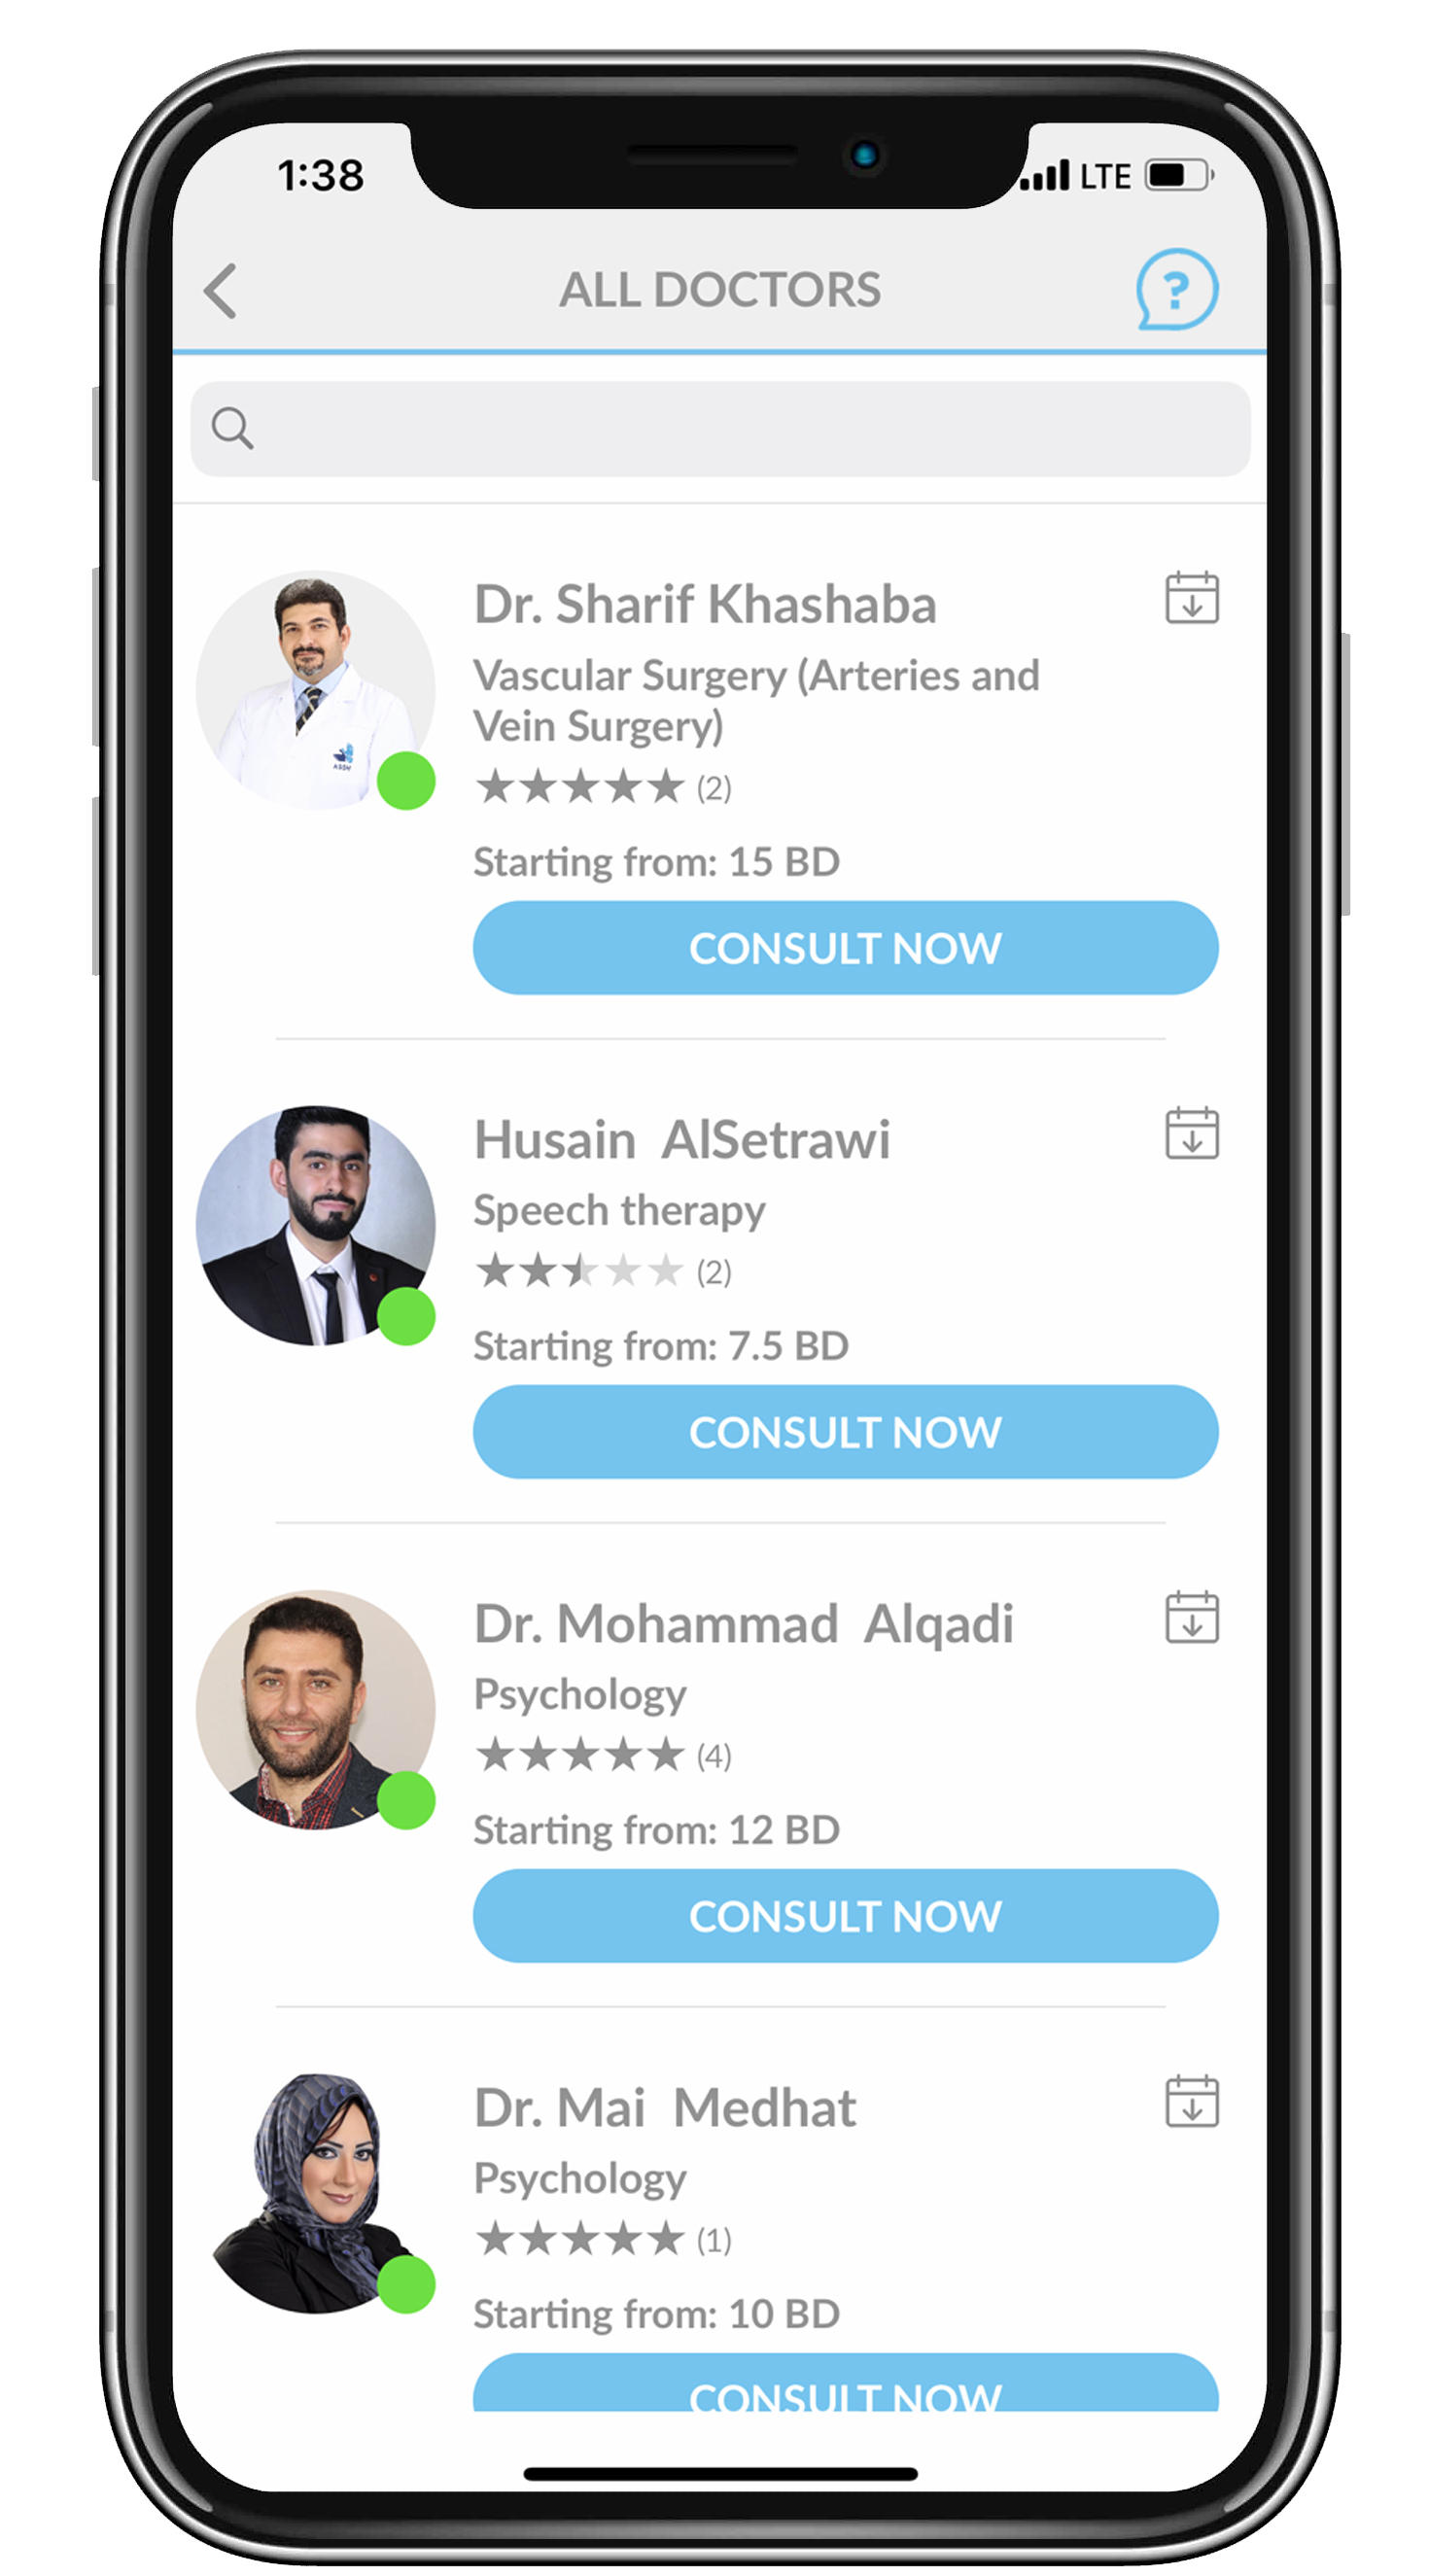 List of all doctors can be viewed on main page. Information of each doctor is prompted and their rate per 15-minute consultation.